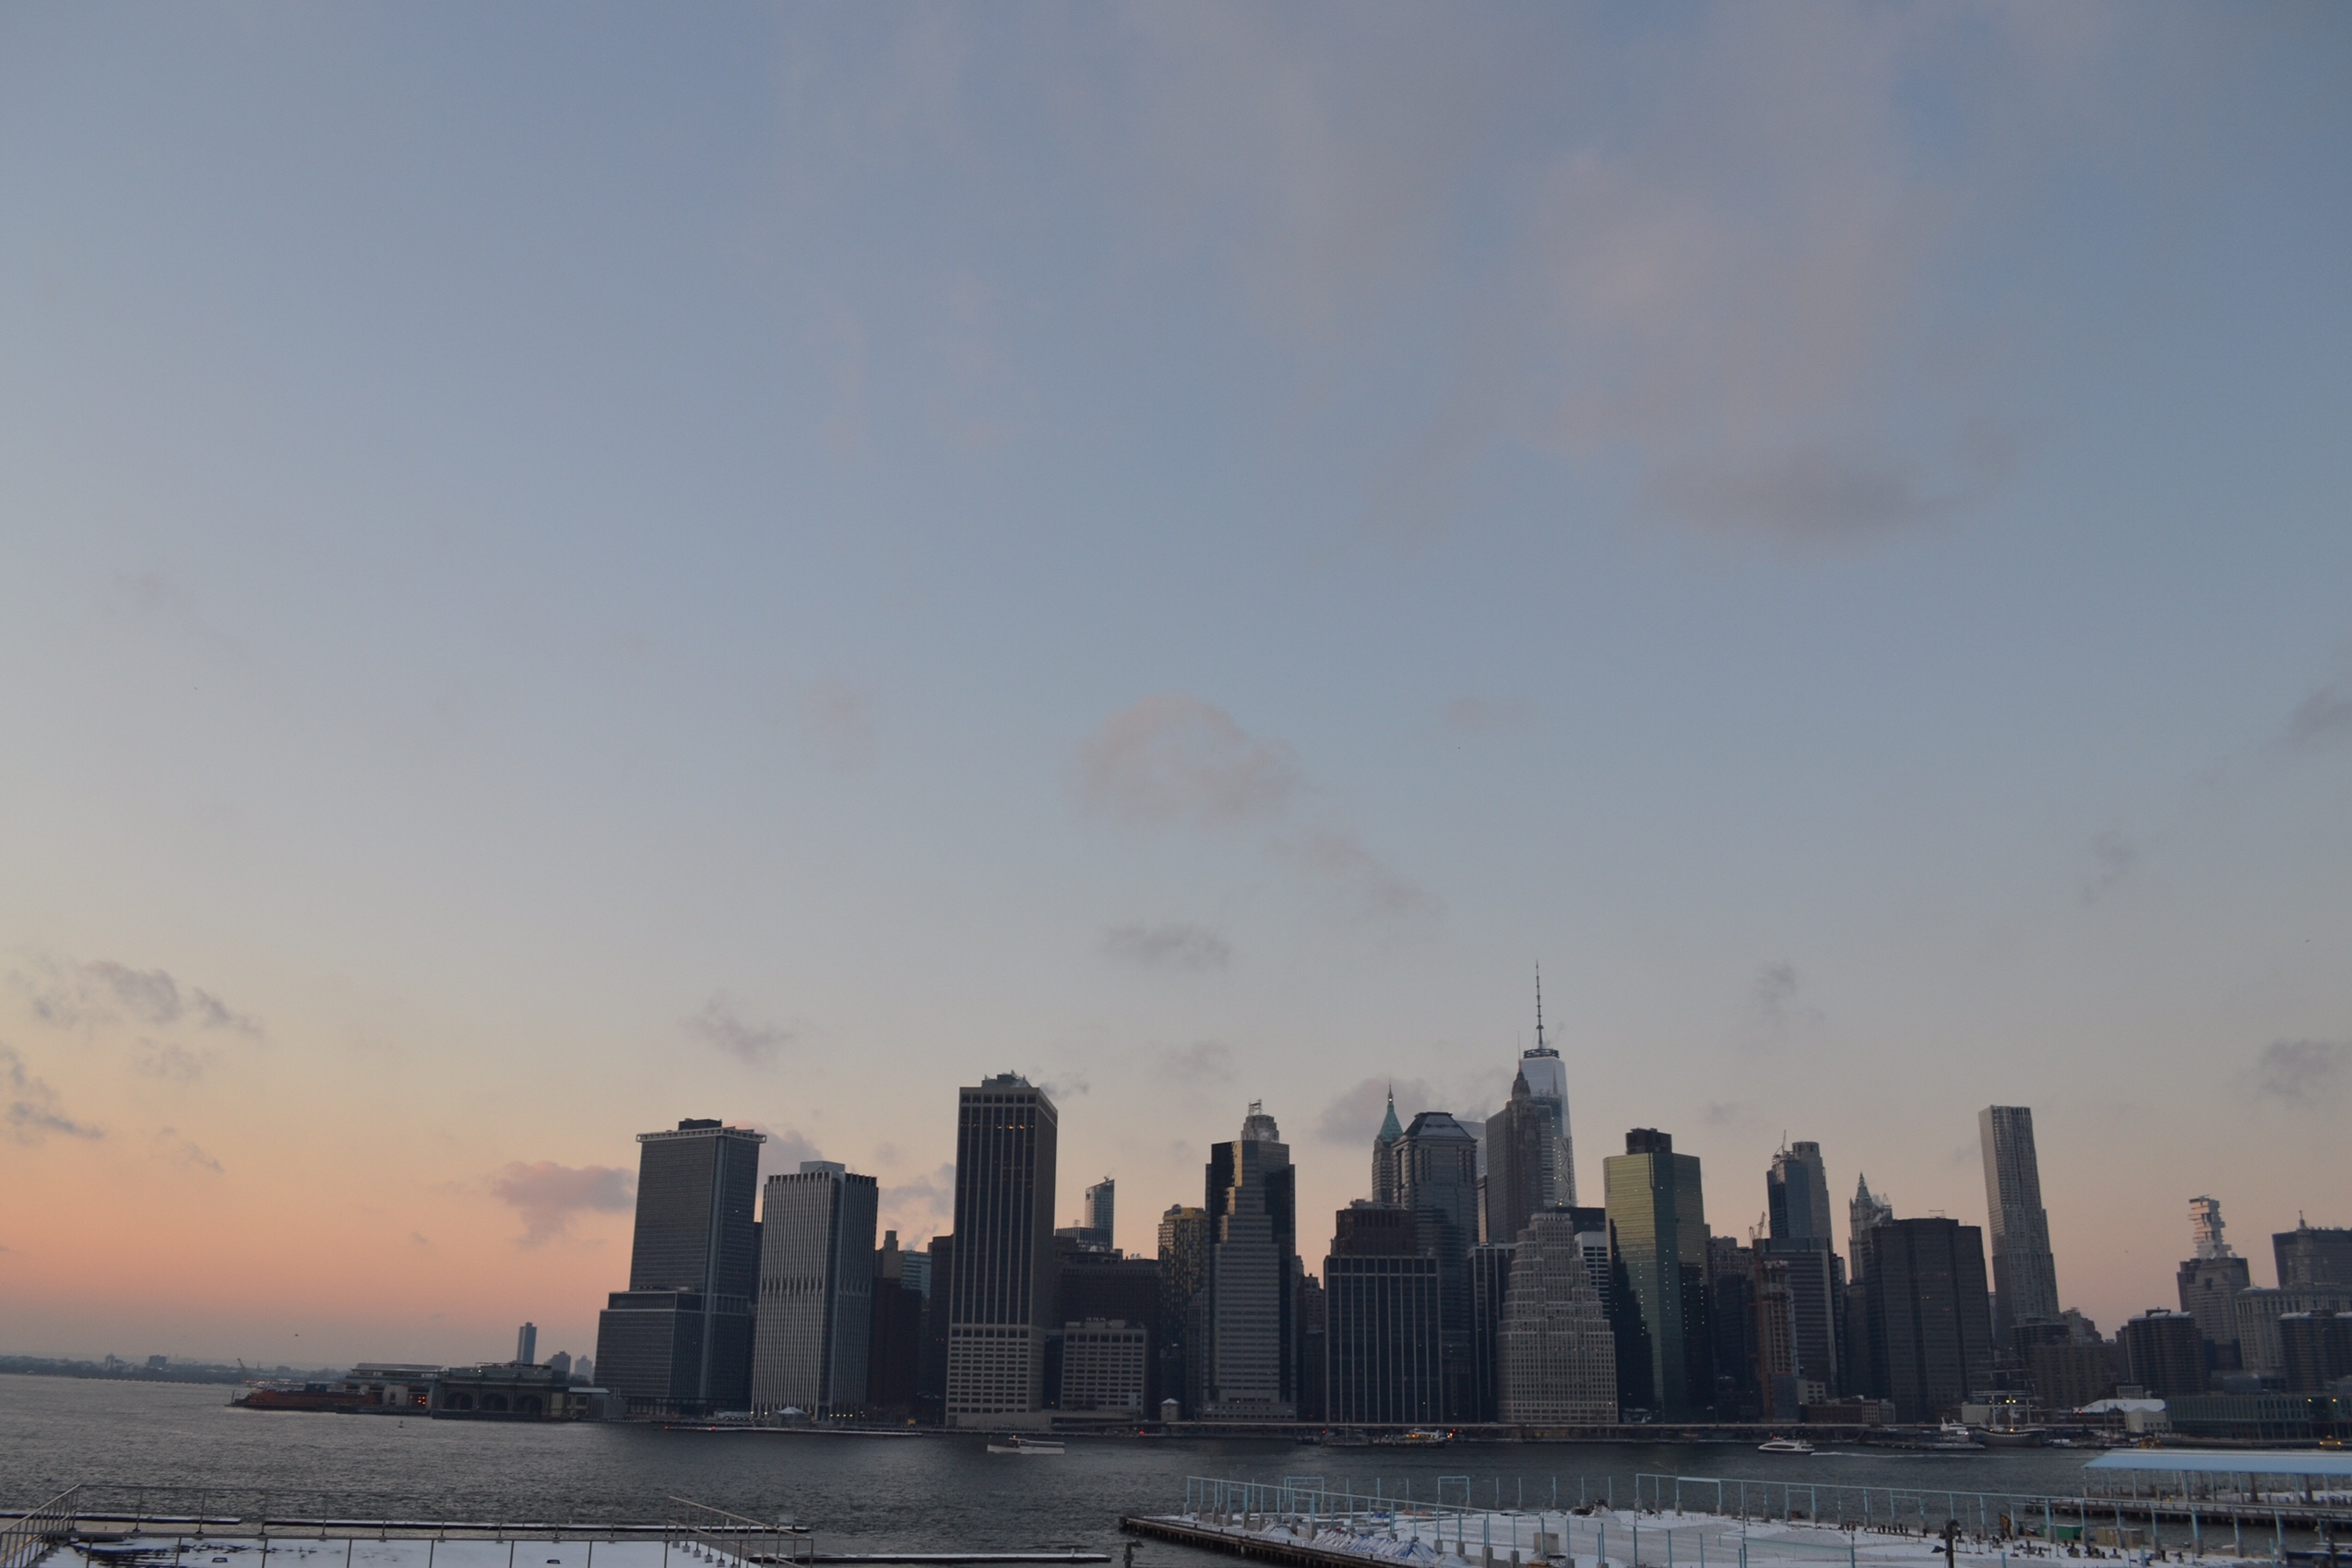 image of the New York skyline